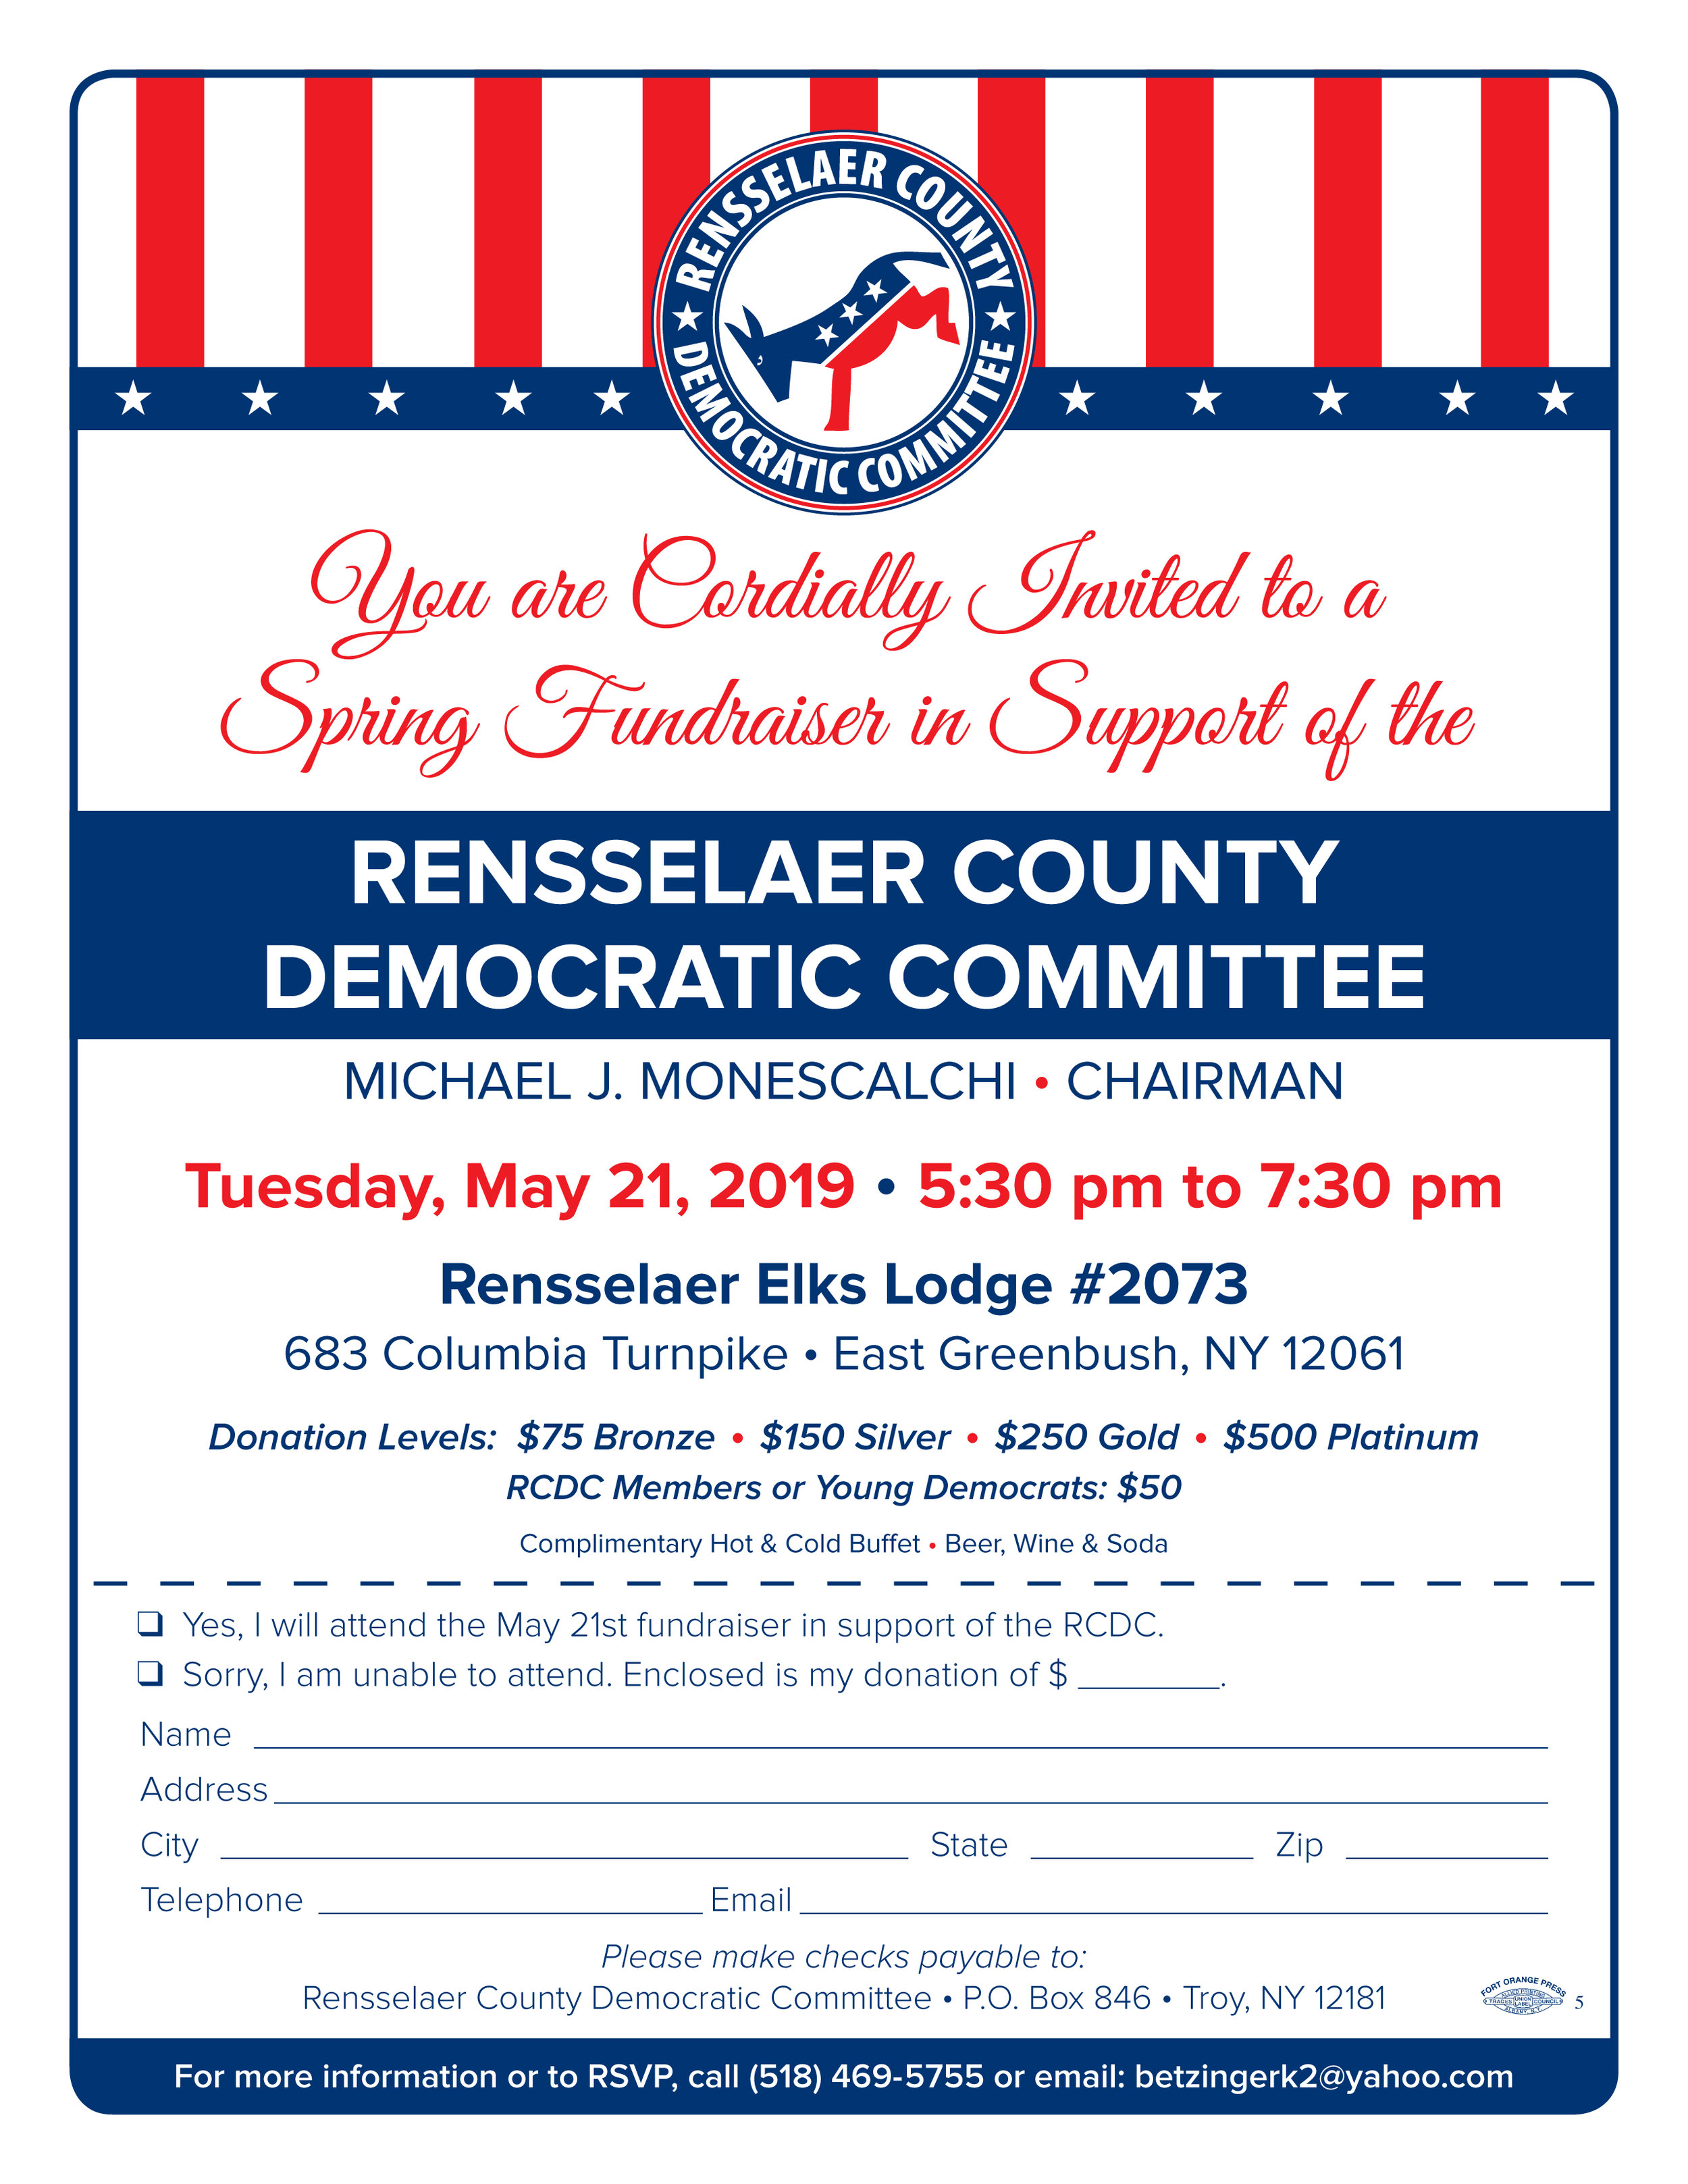 Rensselaer County Democratic Committee Fundraiser Invite - May 21 2019.jpg